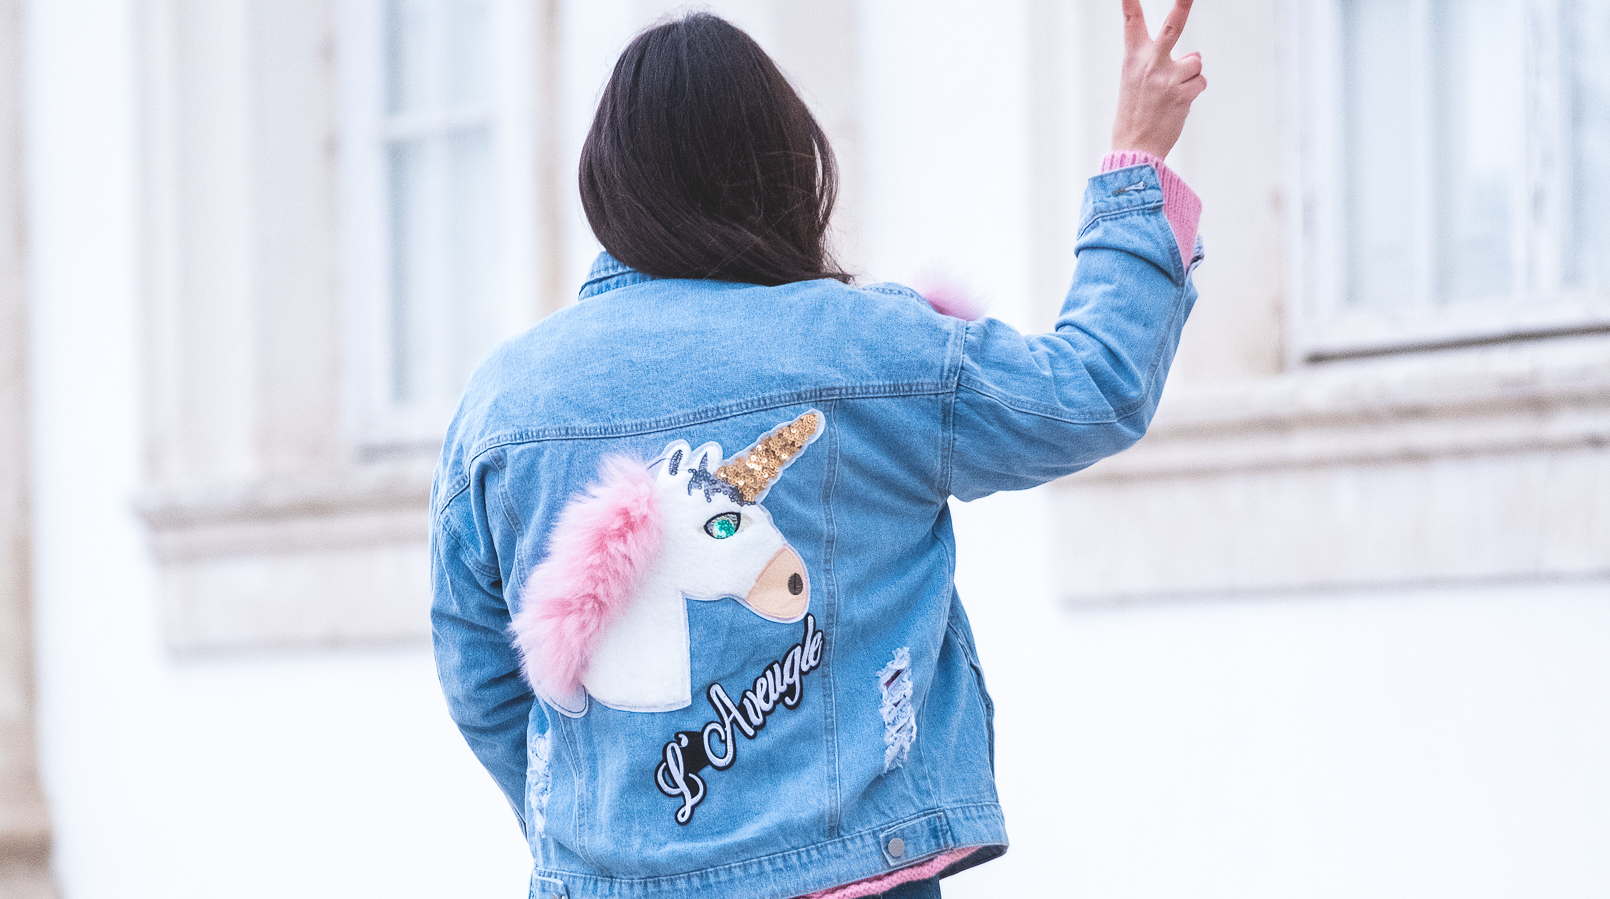 Le Fashionaire denim jacket unicorn sequins faux fur pink 9965F EN denim jacket unicorn sequins faux fur pink 9965F EN